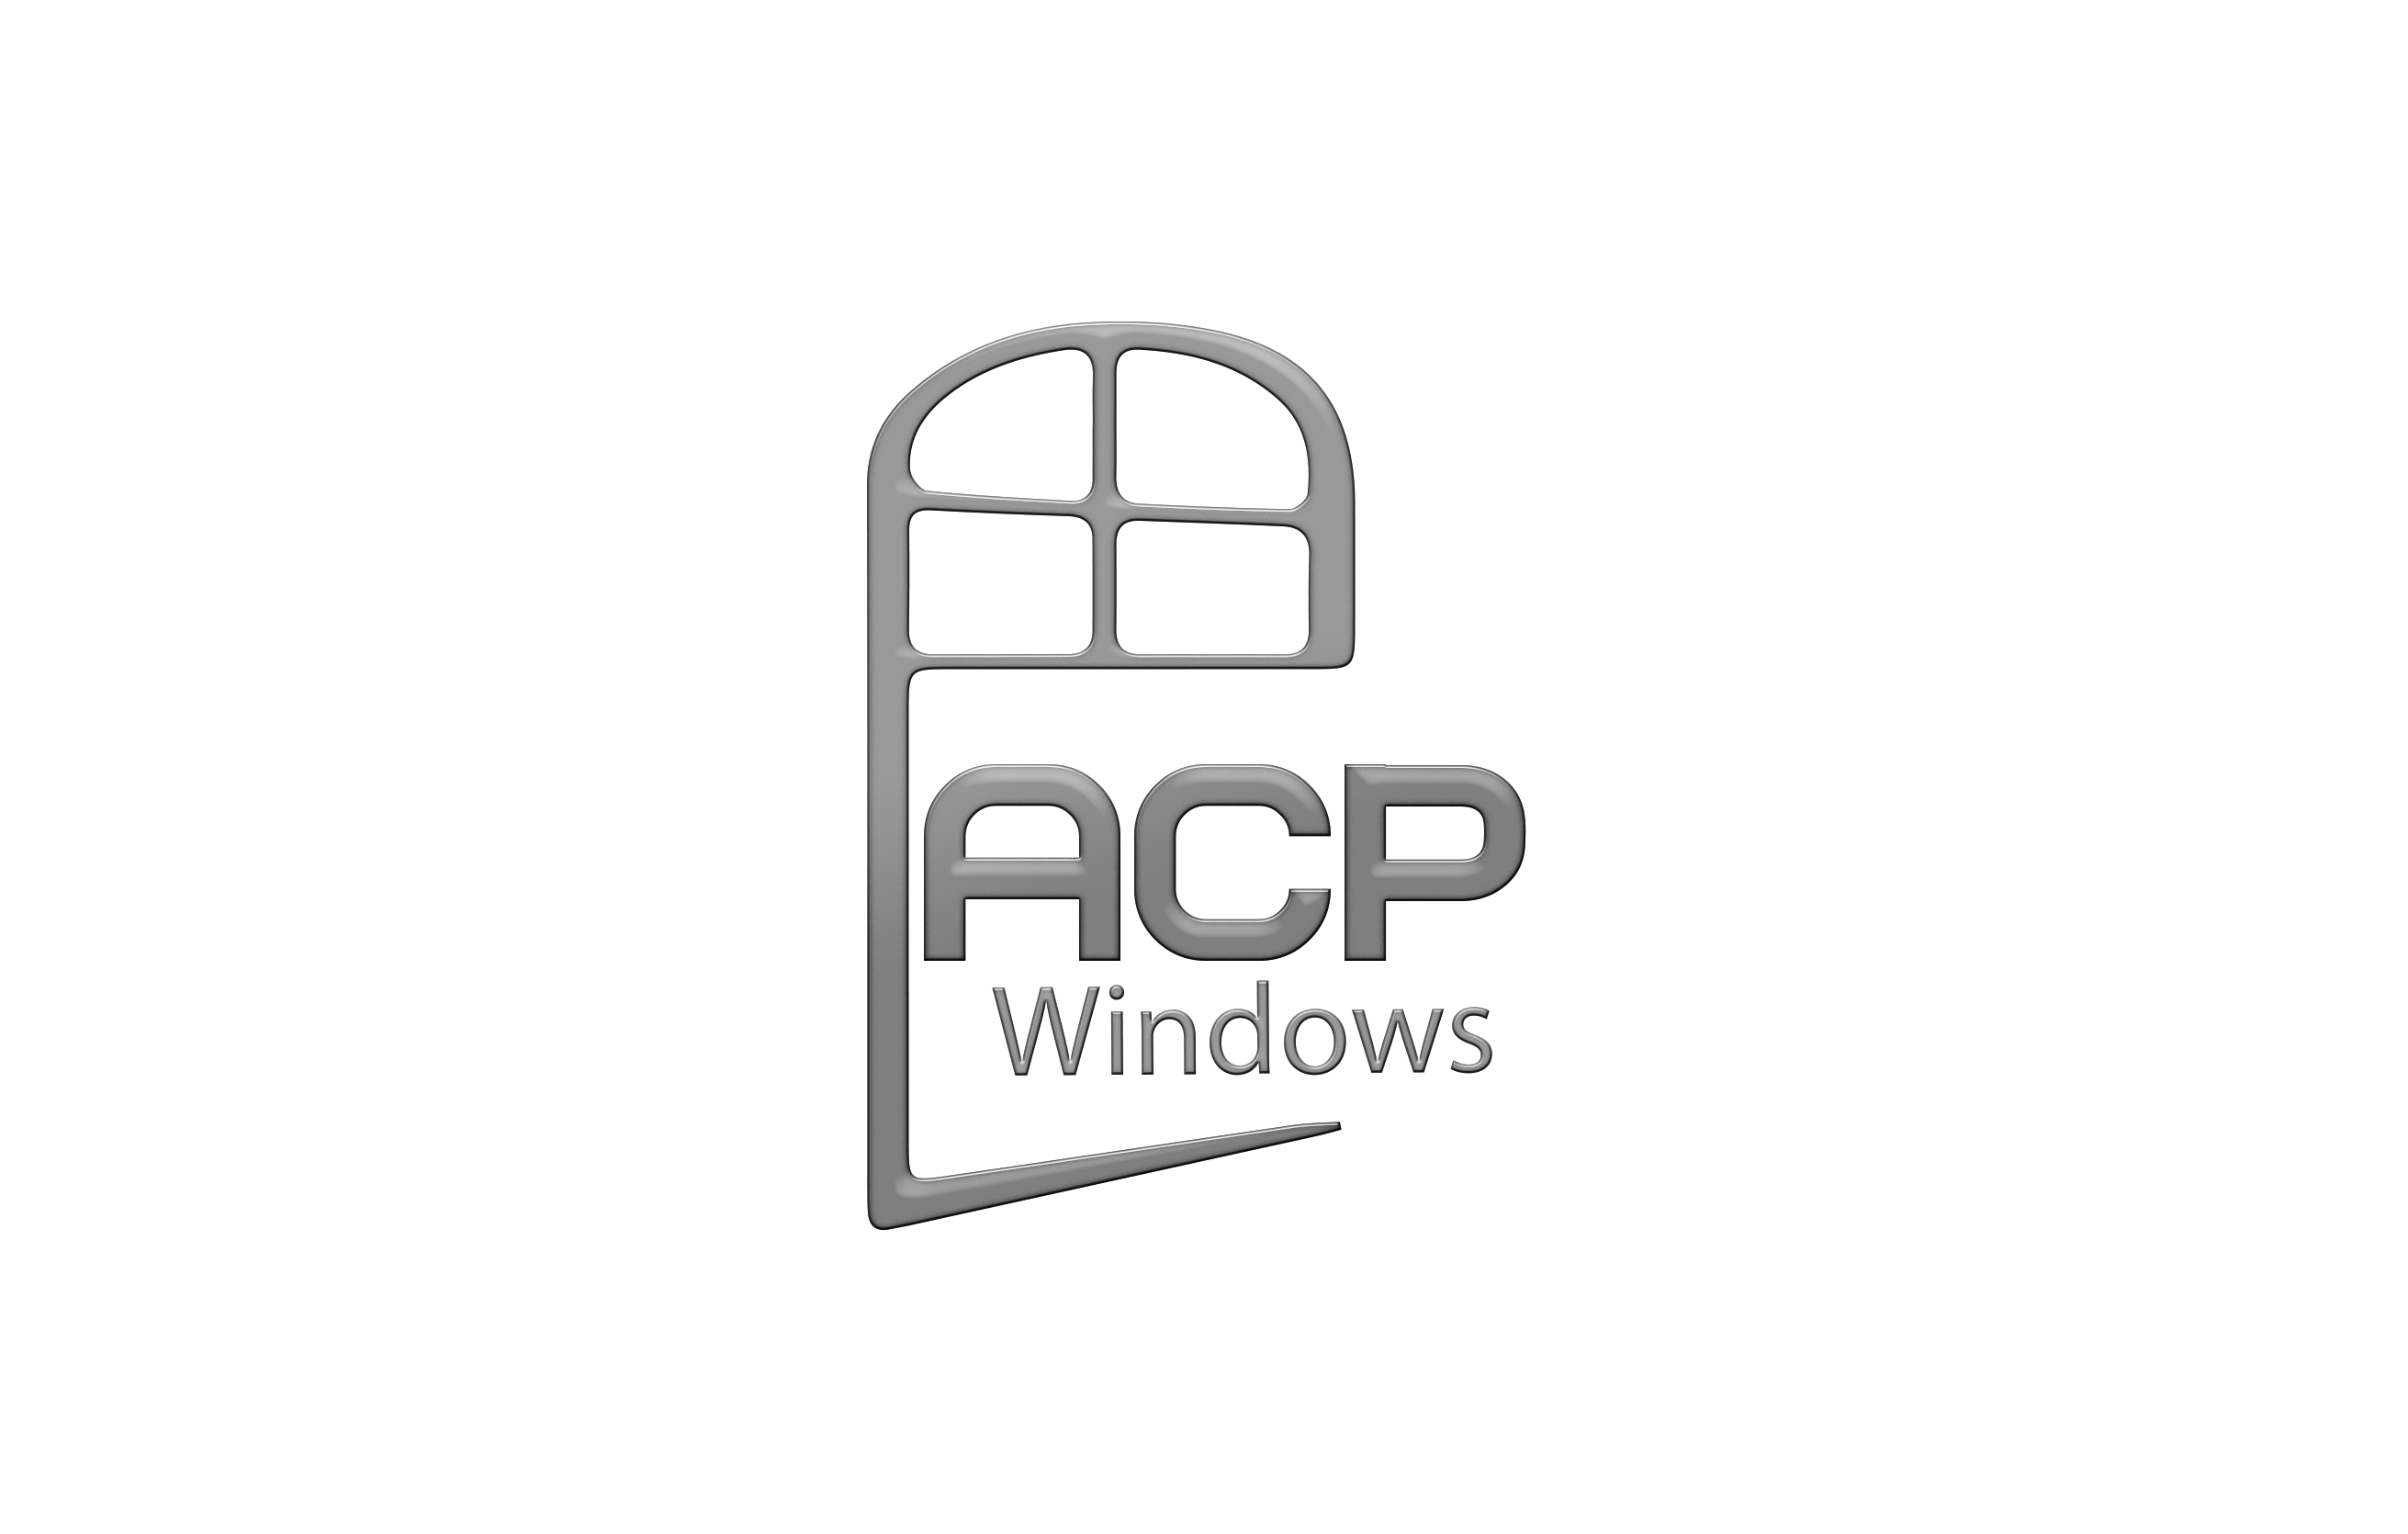 ACP Windows and Doors